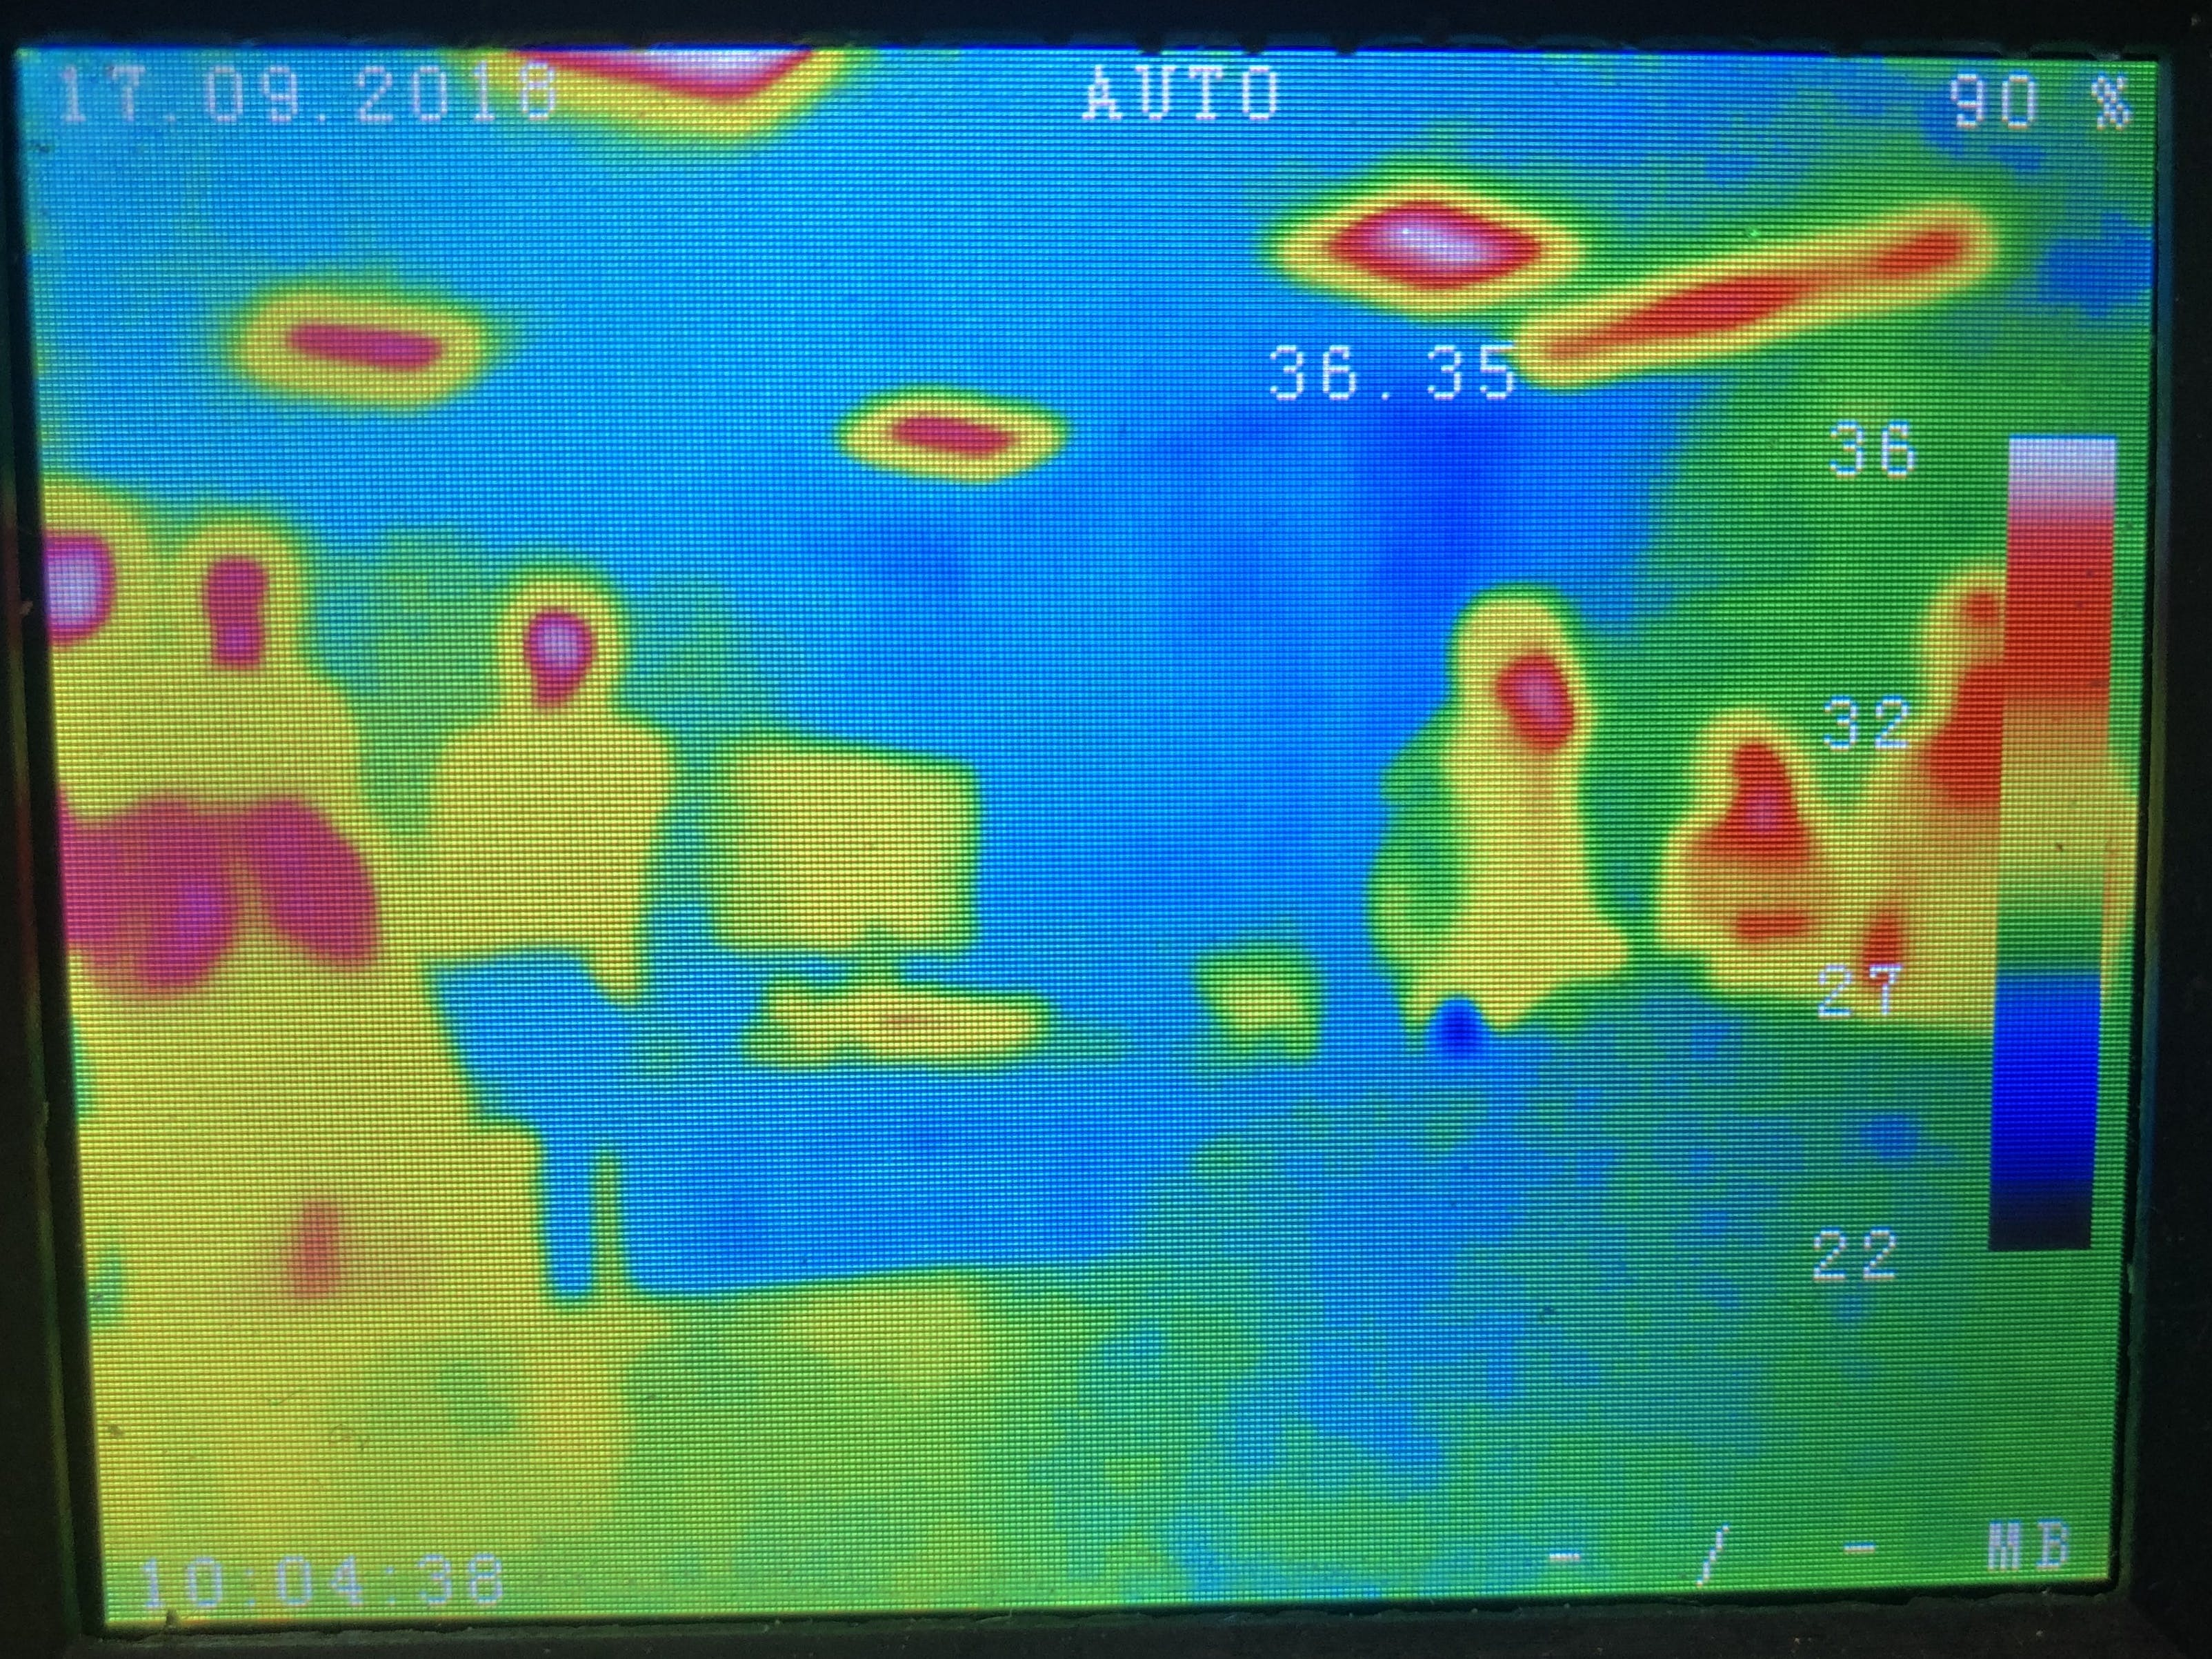 A thermal image of our classroom.